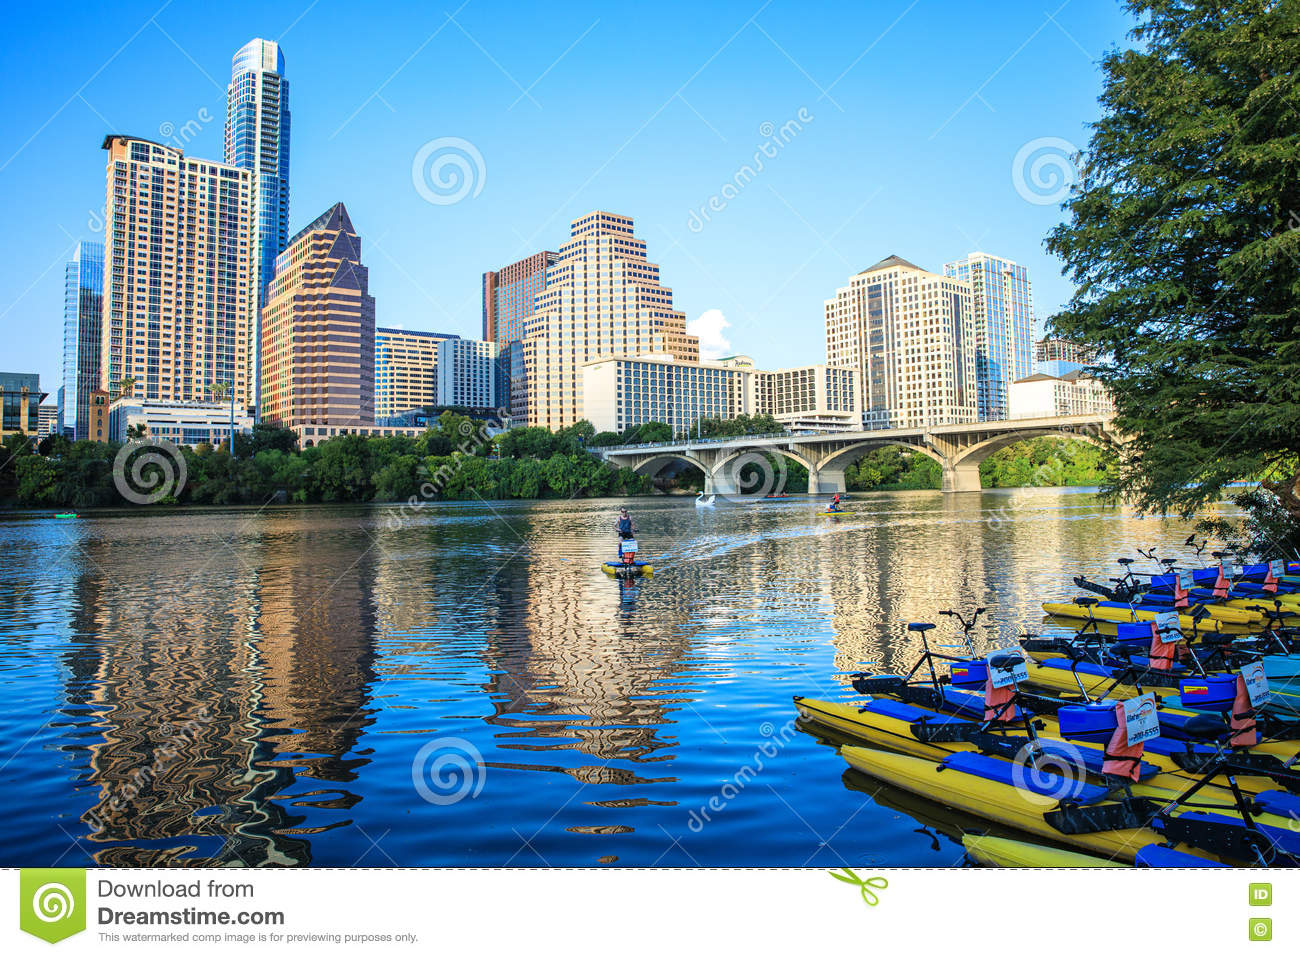 Boats For Rent On The Lady Bird Lake In Austin, Texas Downtown.